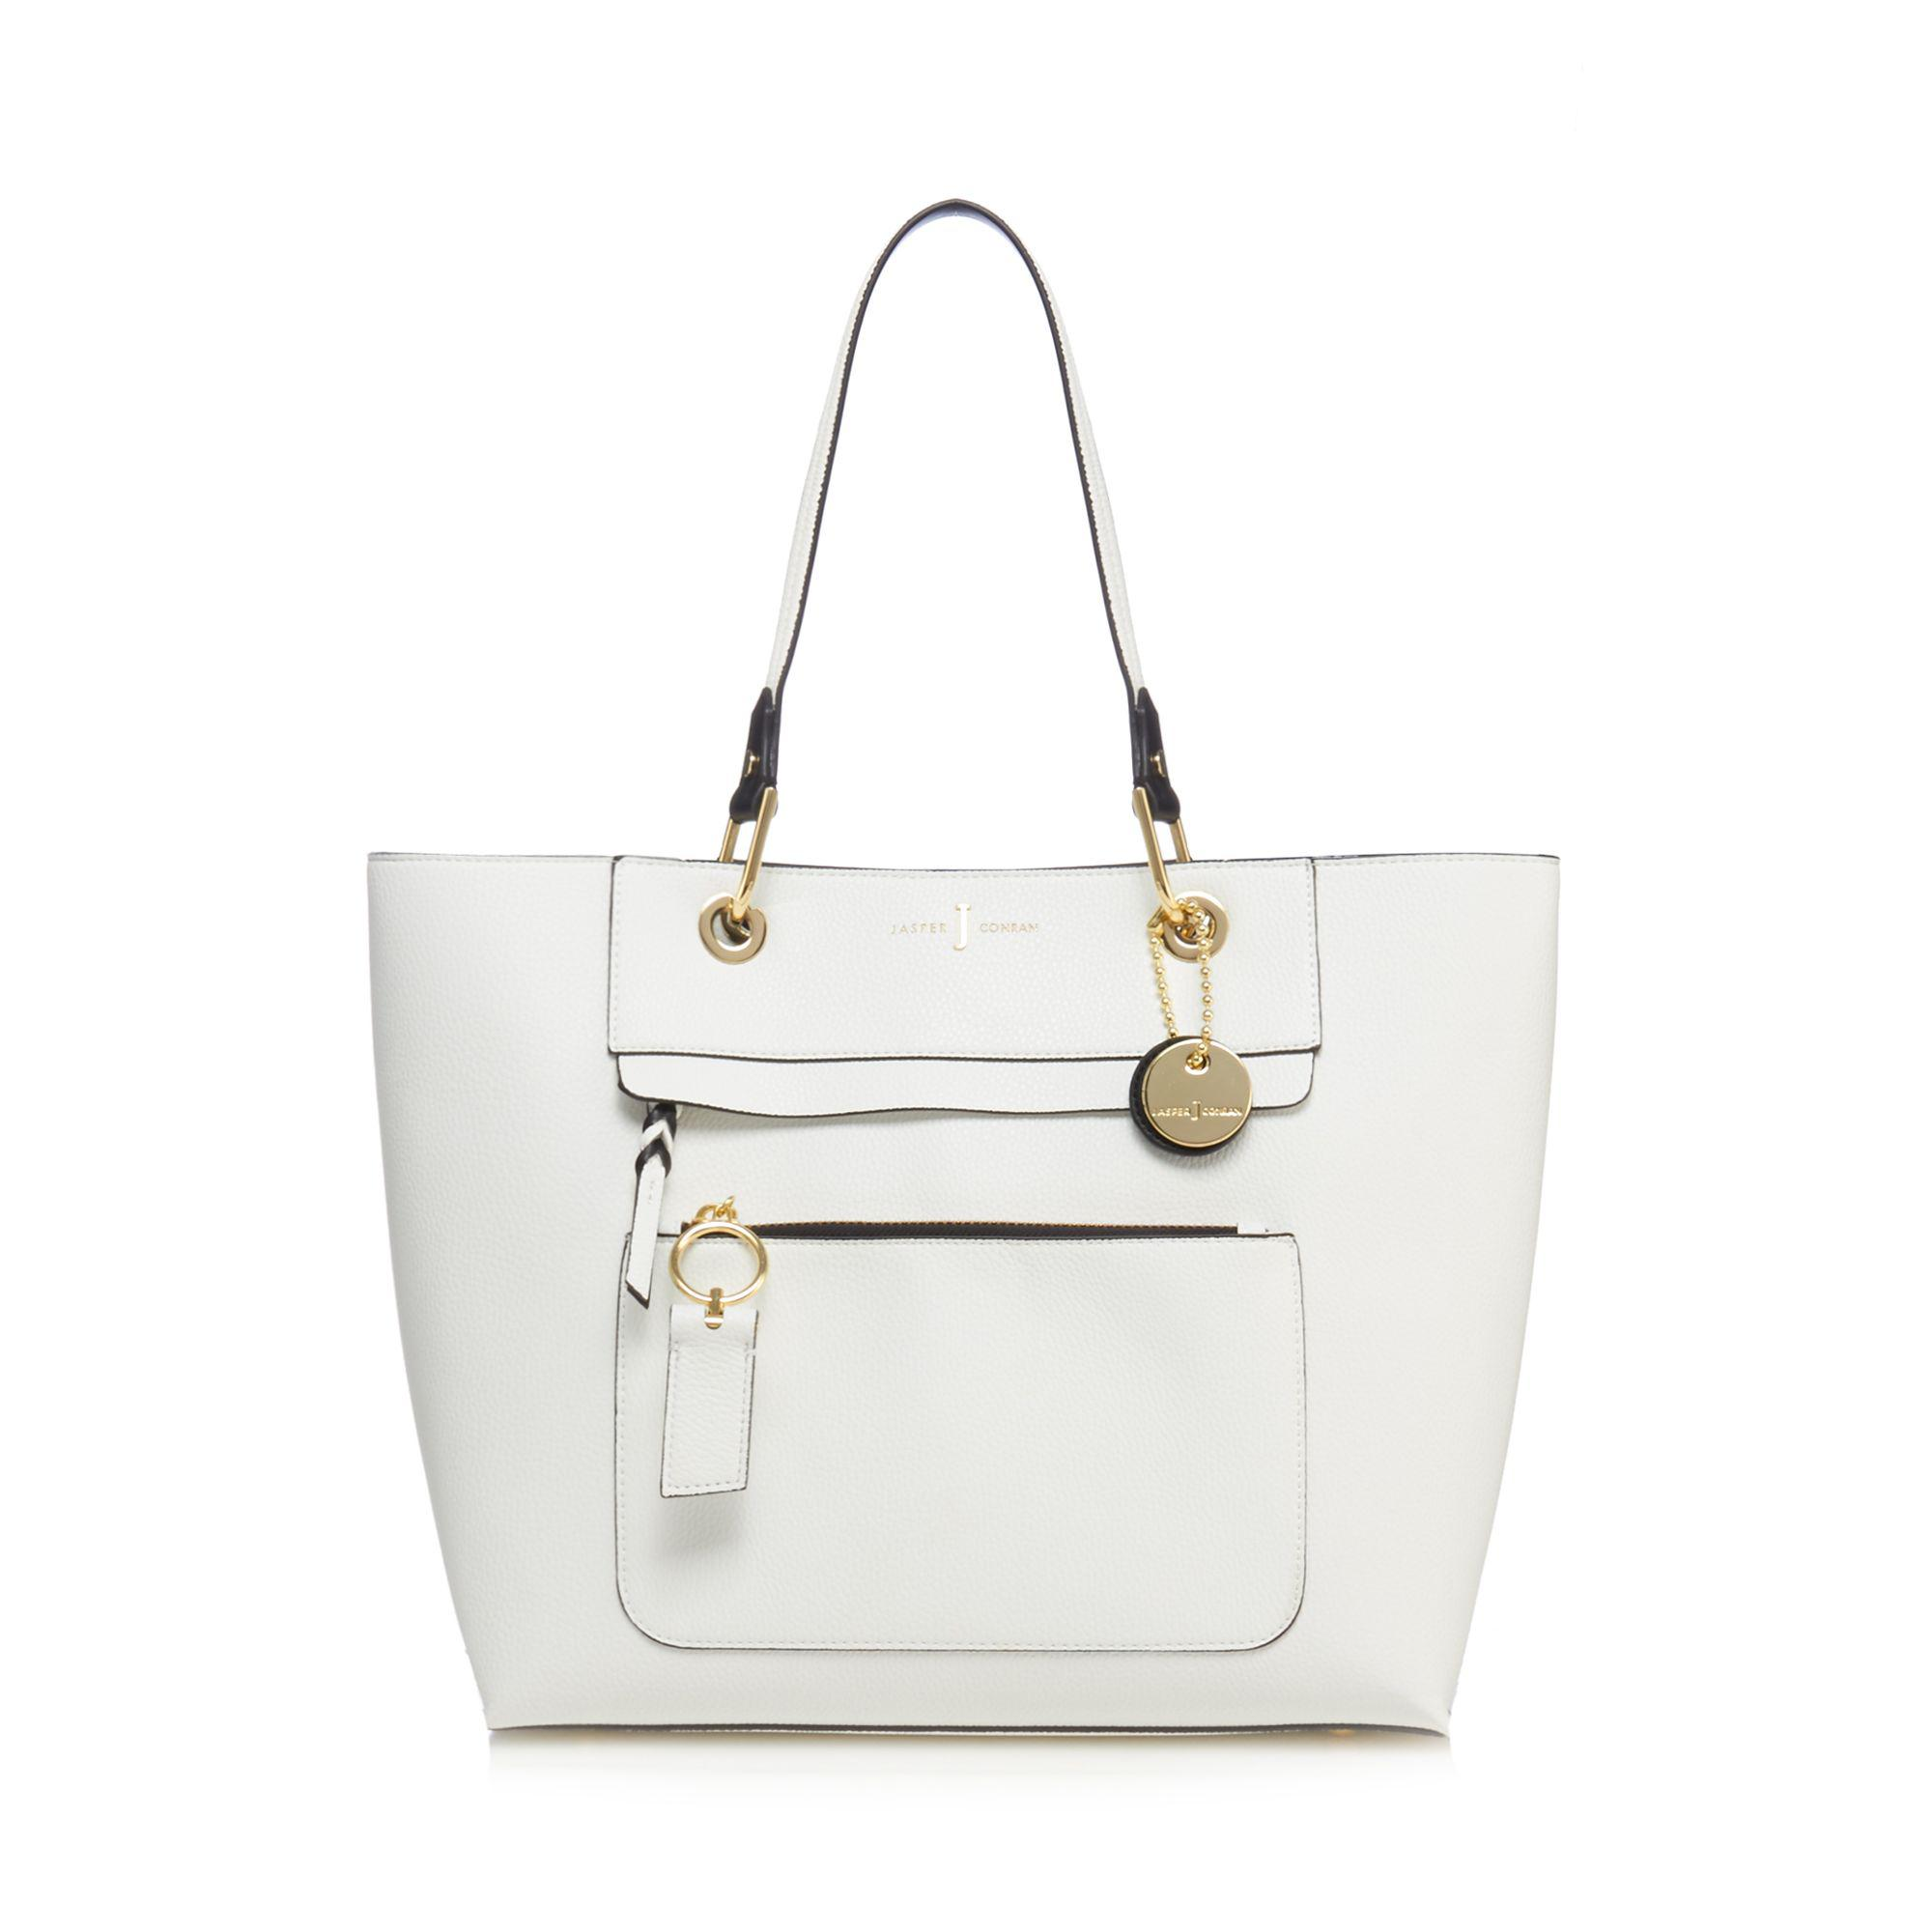 J By Jasper Conran White Front Zip Detail Large Tote Bag in White - Lyst 7c9dd6e744d13